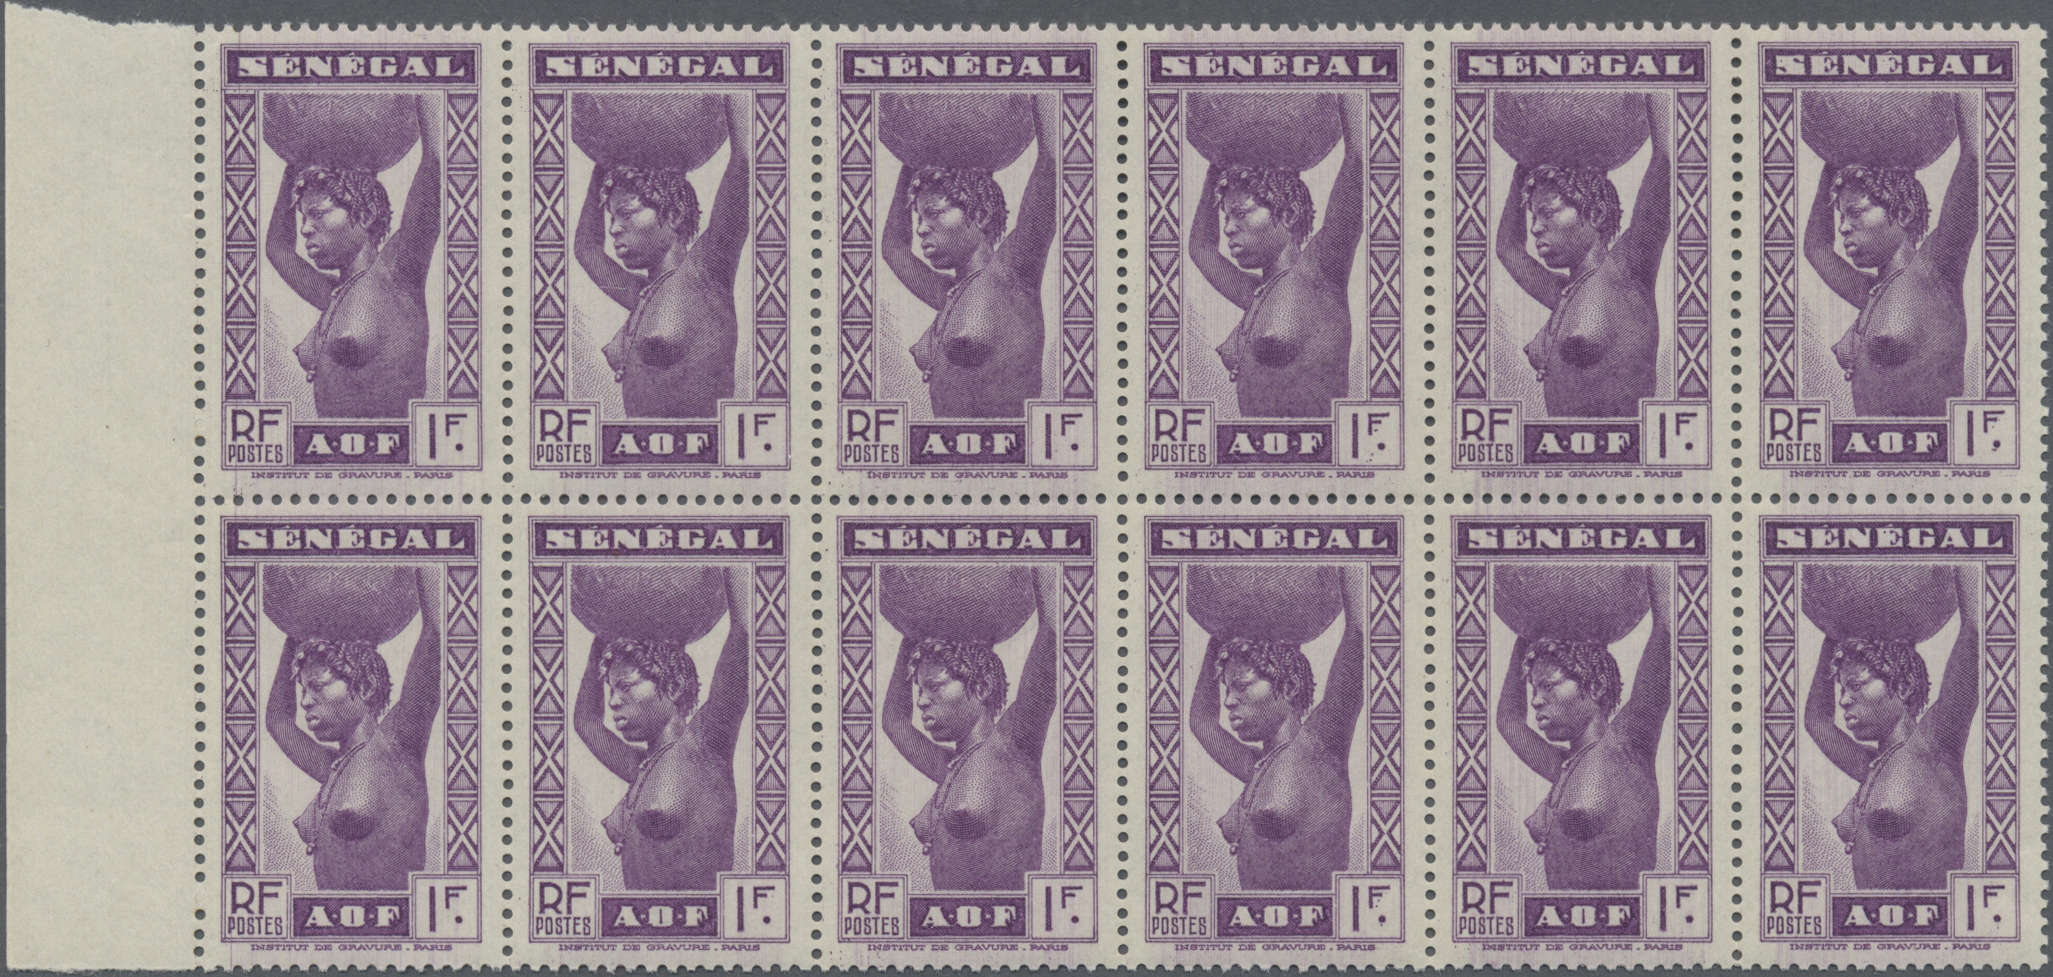 Lot 26897 - senegal  -  Auktionshaus Christoph Gärtner GmbH & Co. KG Sale #46 Gollcetions Germany - including the suplement